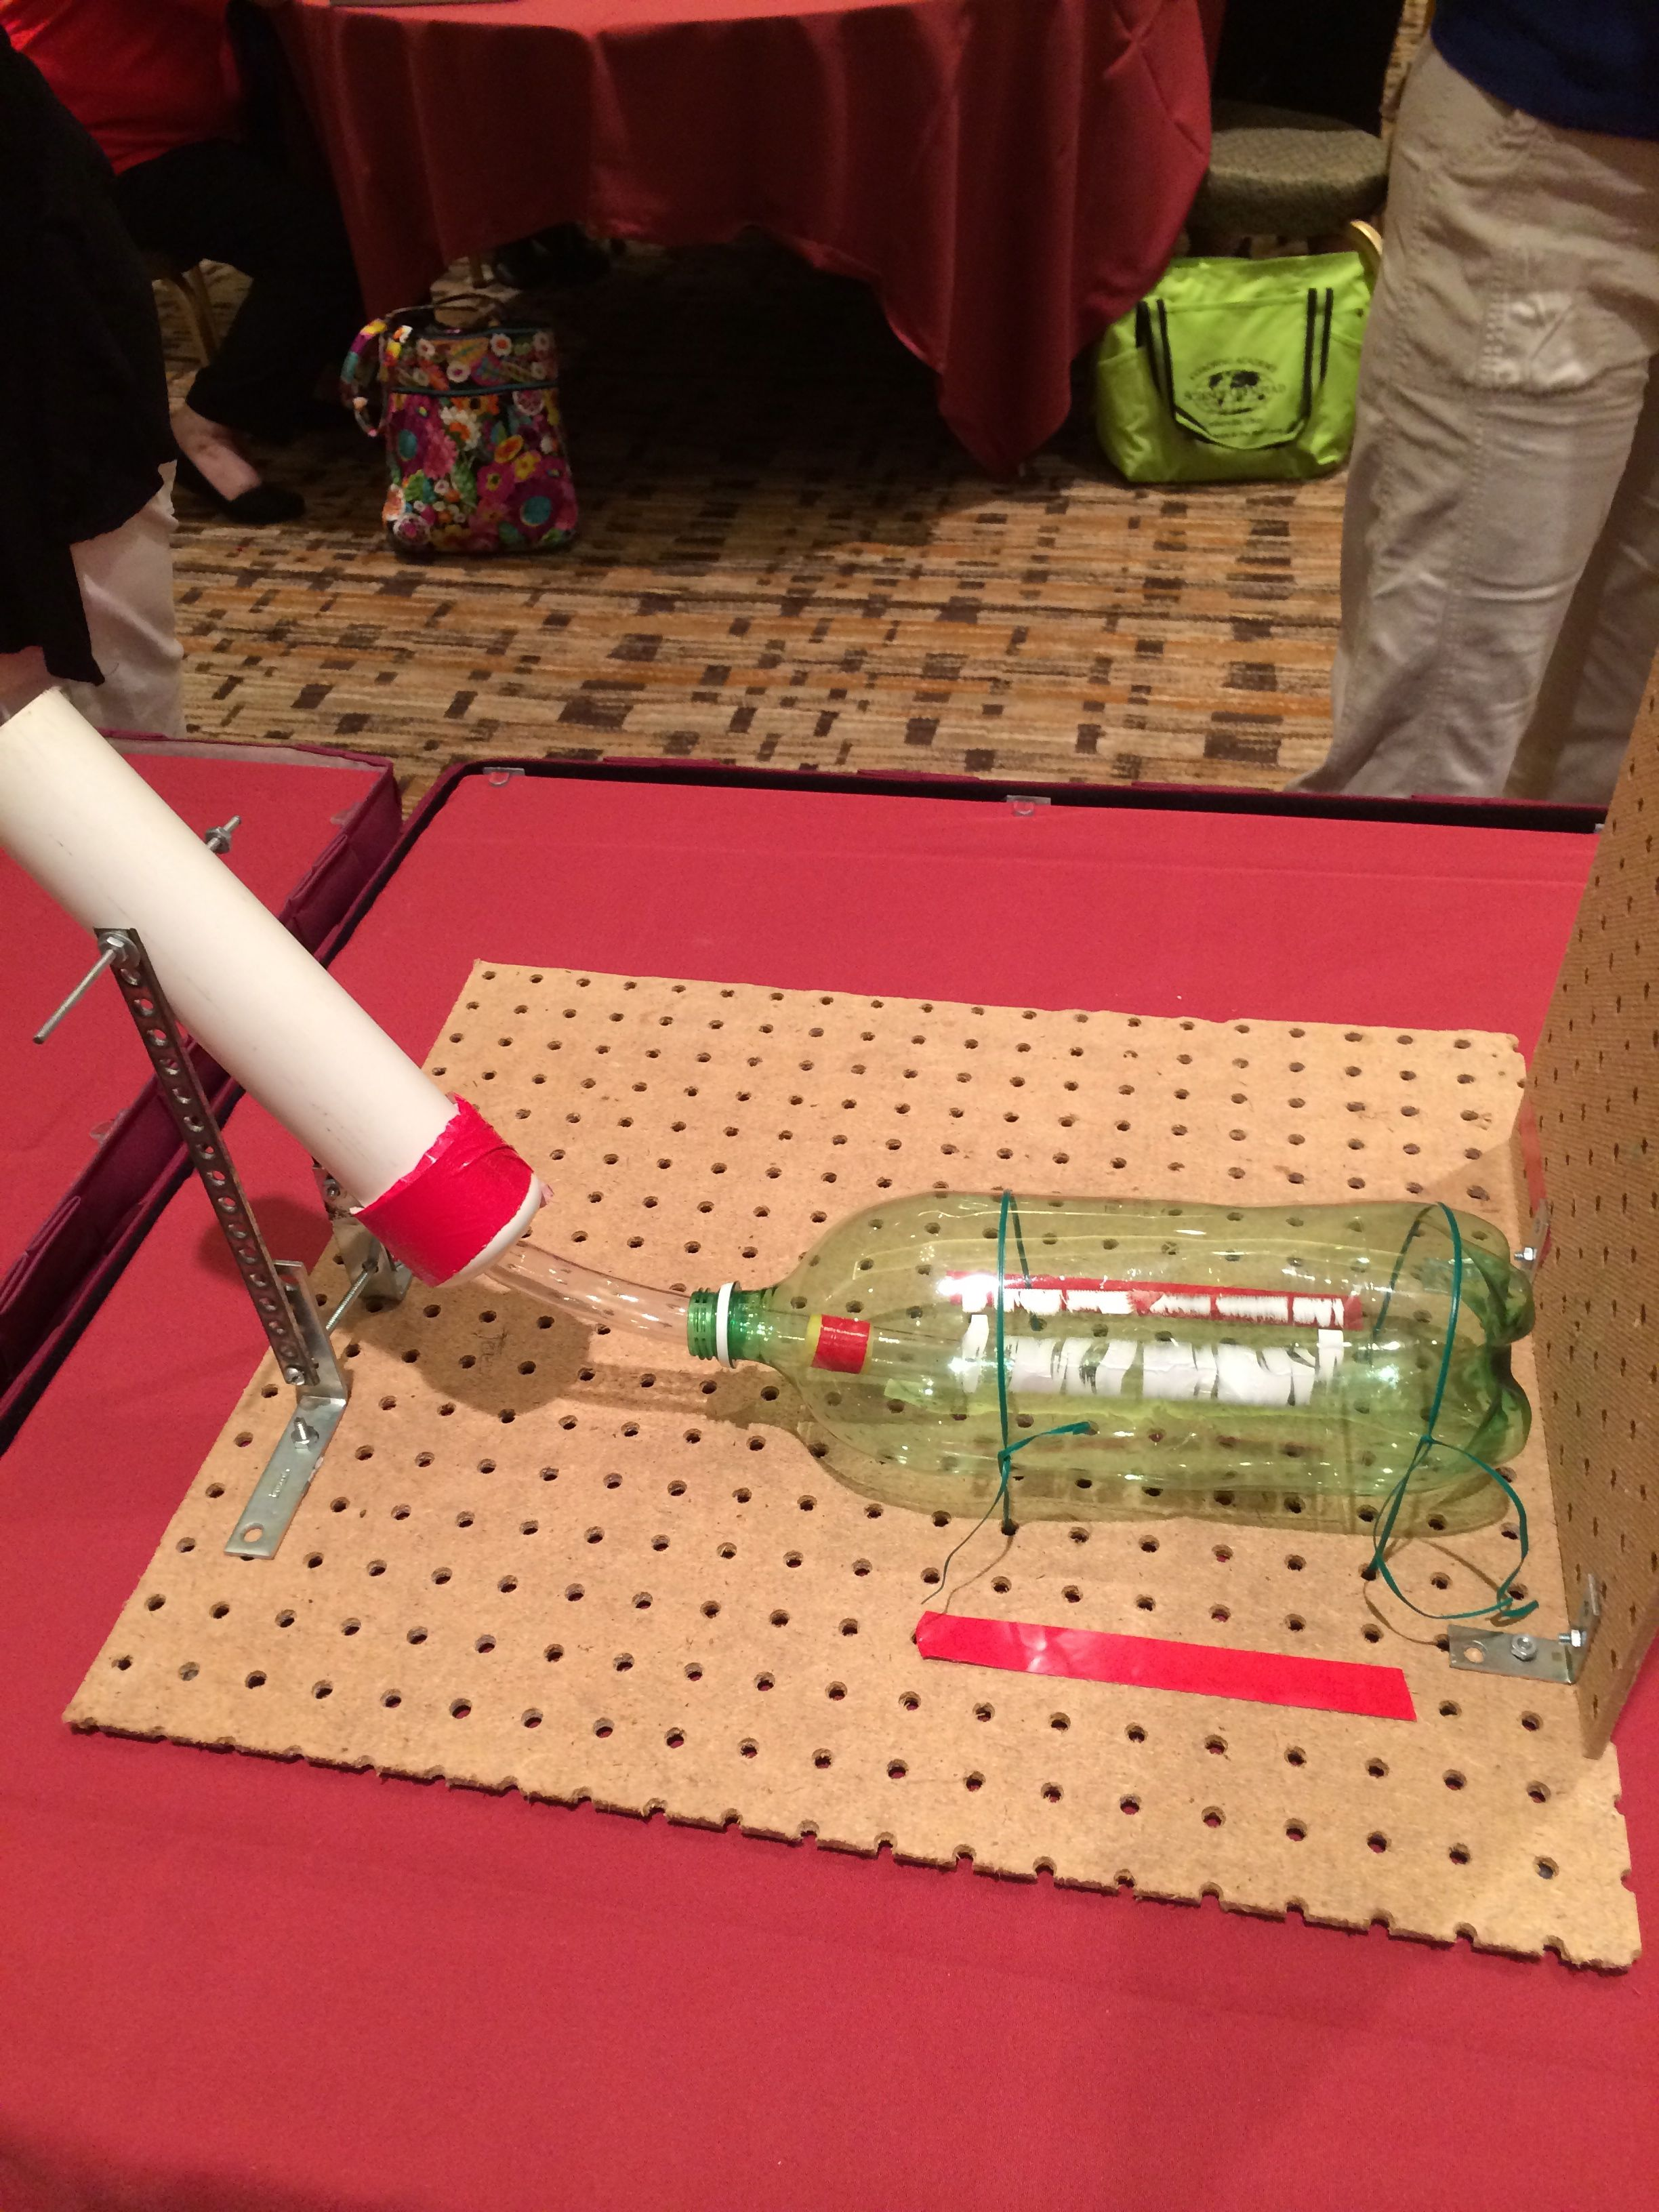 An example of a launcher for Air Trajectory, a new B and C event.